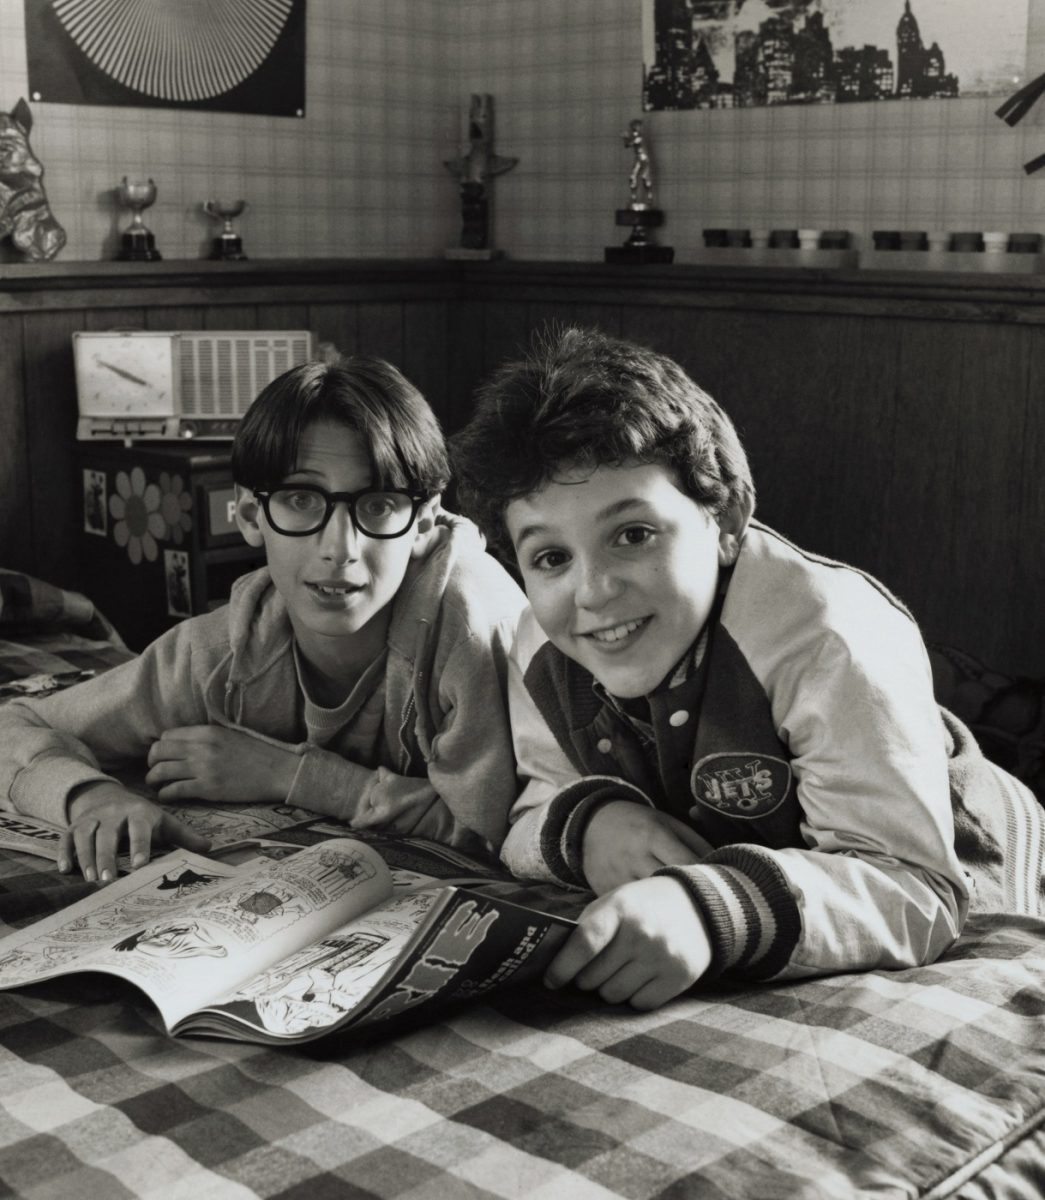 Paul Pfieffer and Kevin Arnold read a magazine together in a bedroom during an episode of 'The Wonder Years'